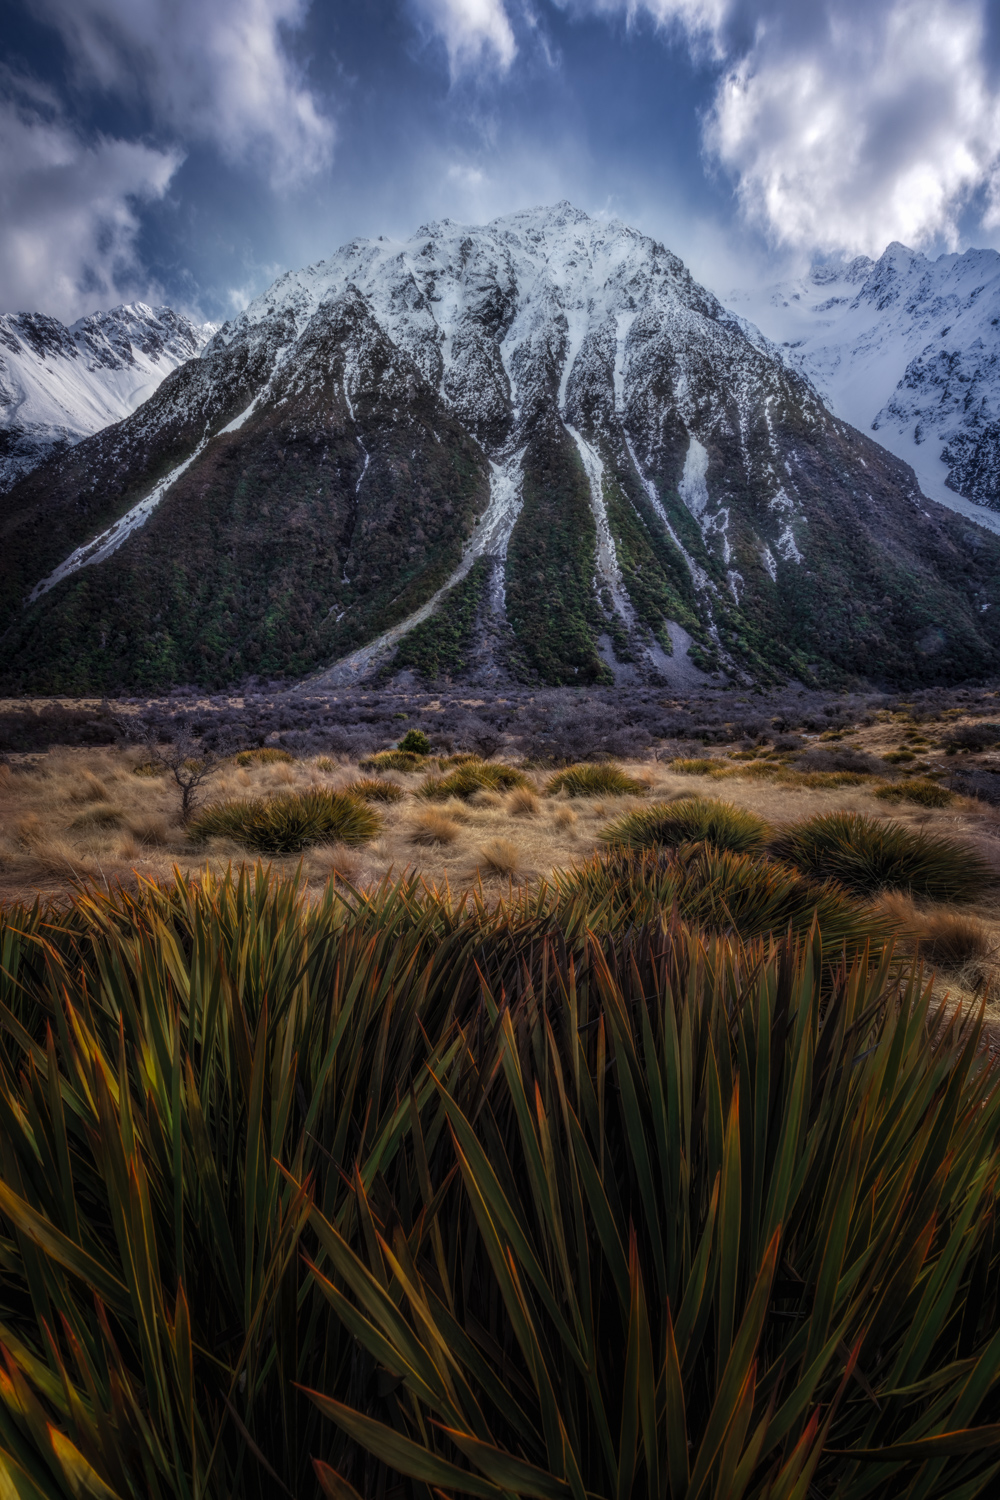 Landscape Photography Workshop Tours - Aoraki National Park, New Zealand